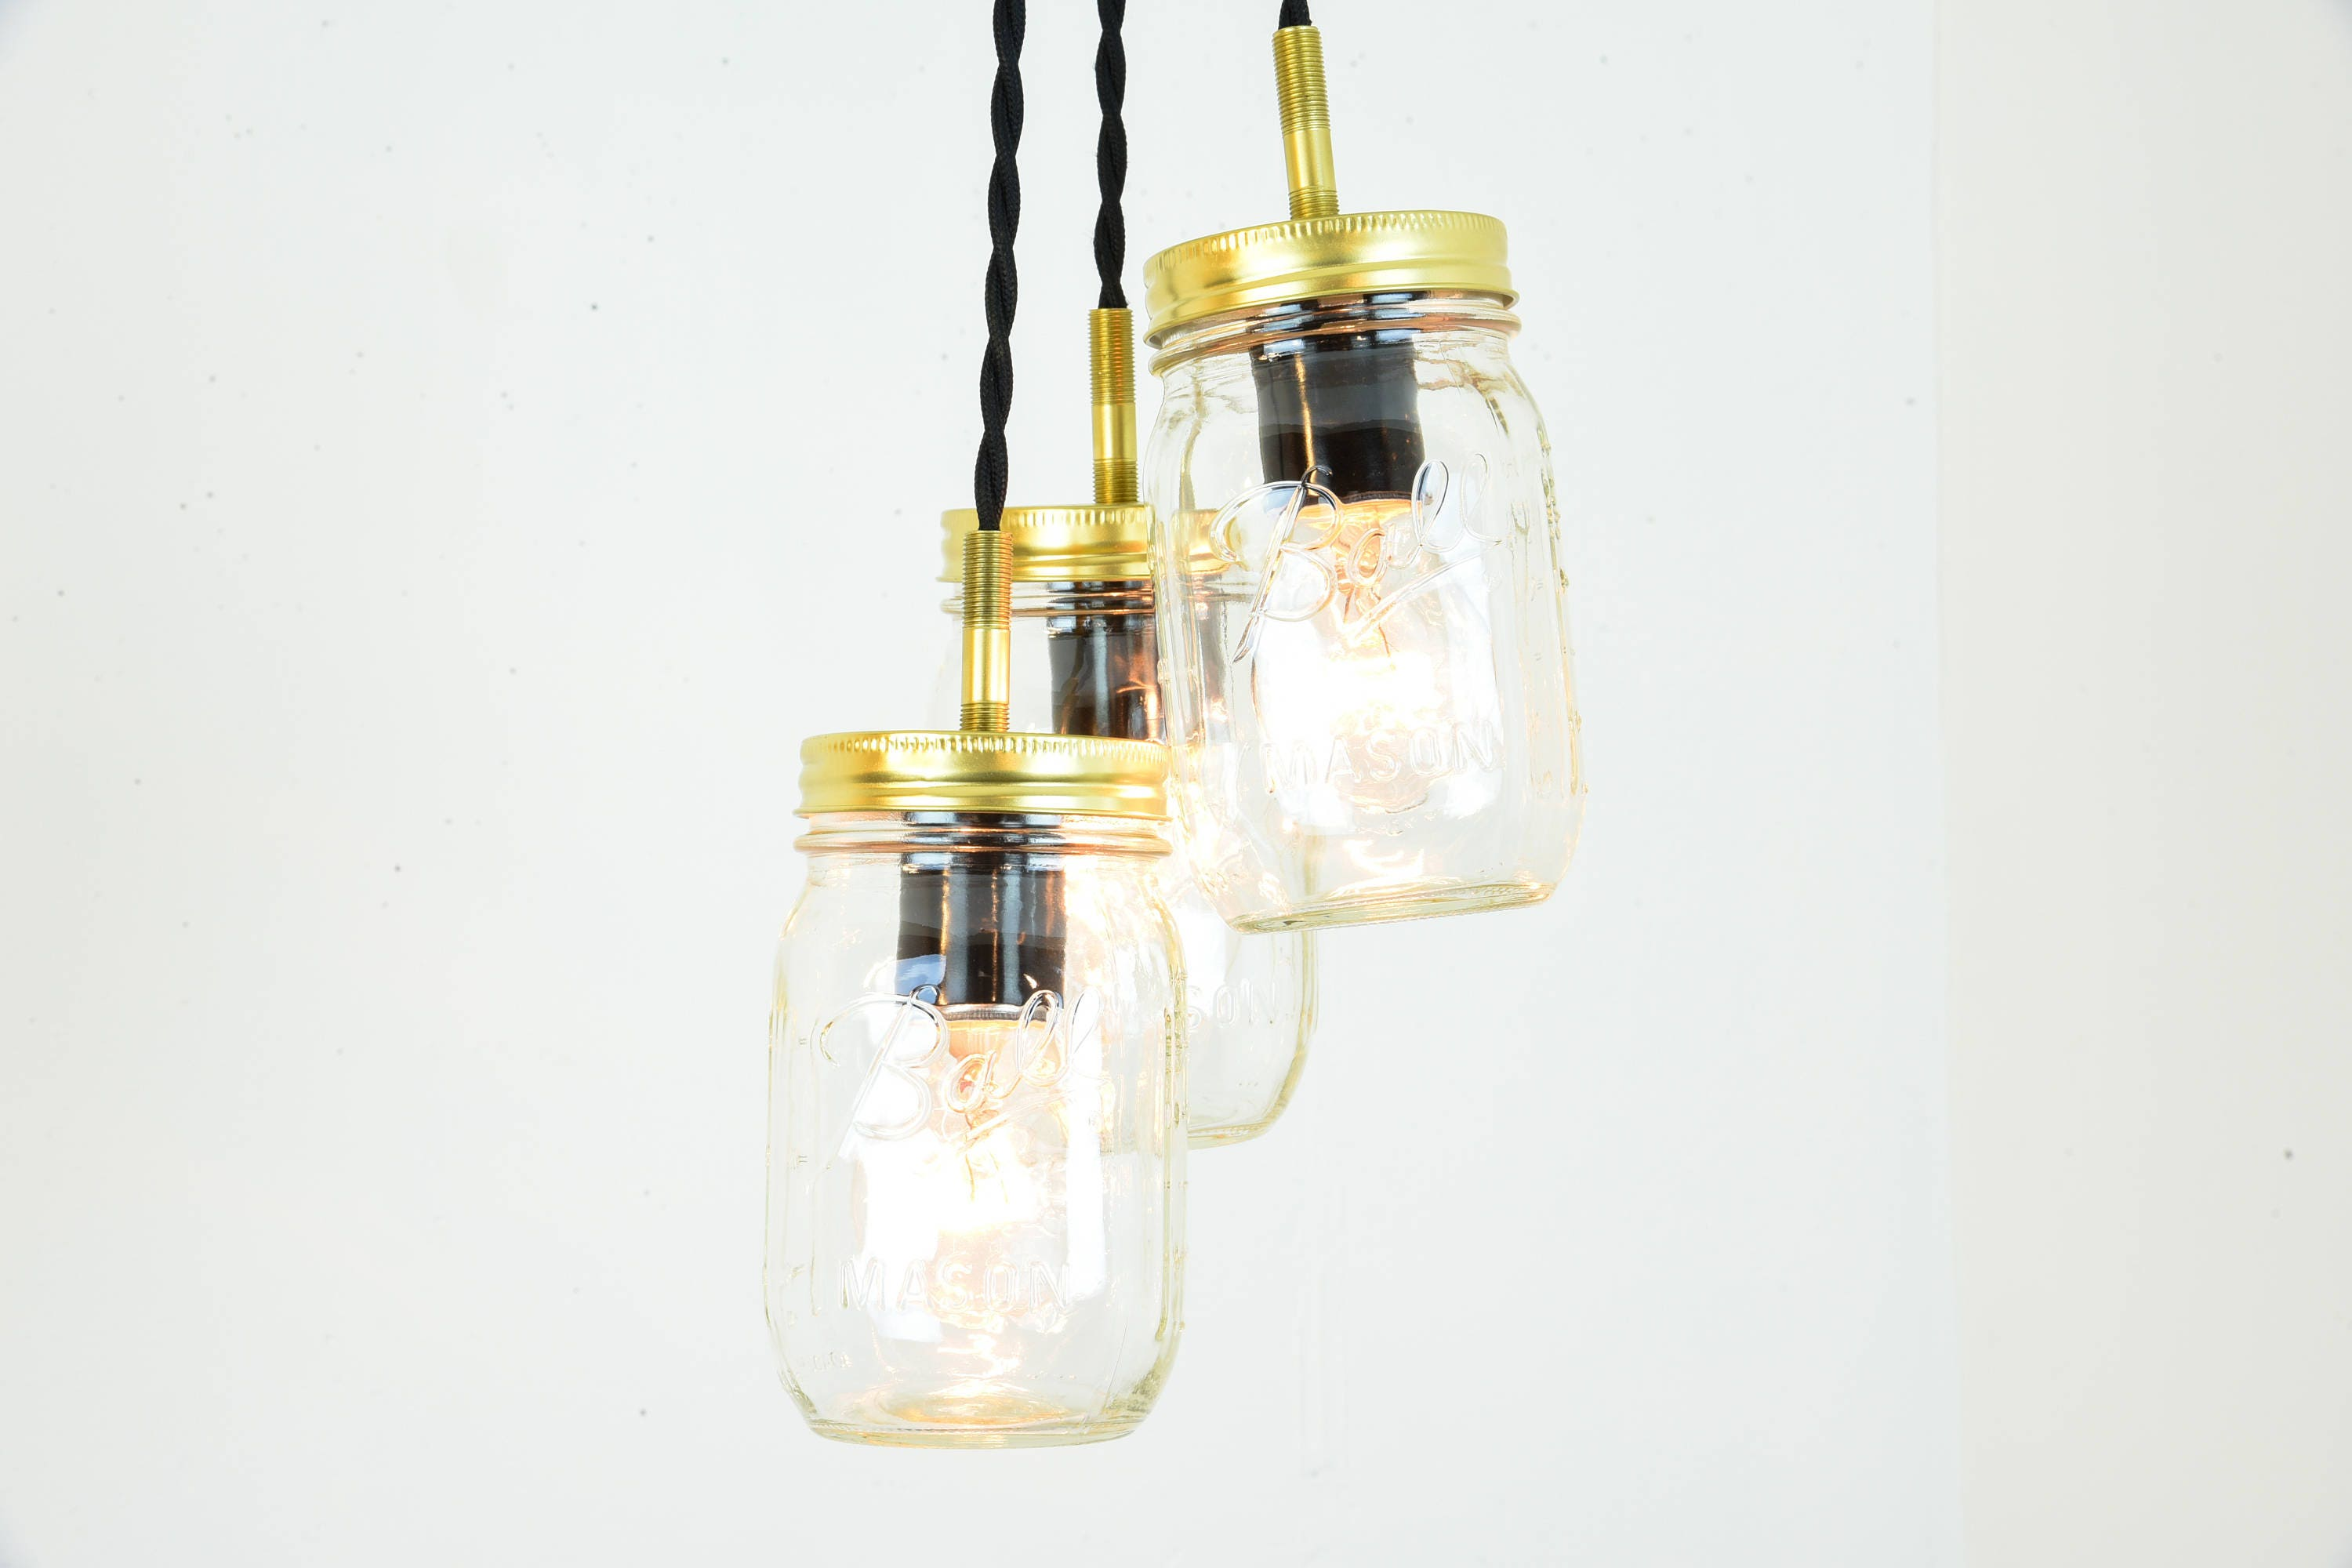 Mason Jar Chandelier - Mason Jar Light - Pendant Lights - Jar Cluster Fixture - Modern Pendant Light - Gold Light Fixture - Hanging L& & Mason Jar Chandelier - Mason Jar Light - Pendant Lights - Jar ...